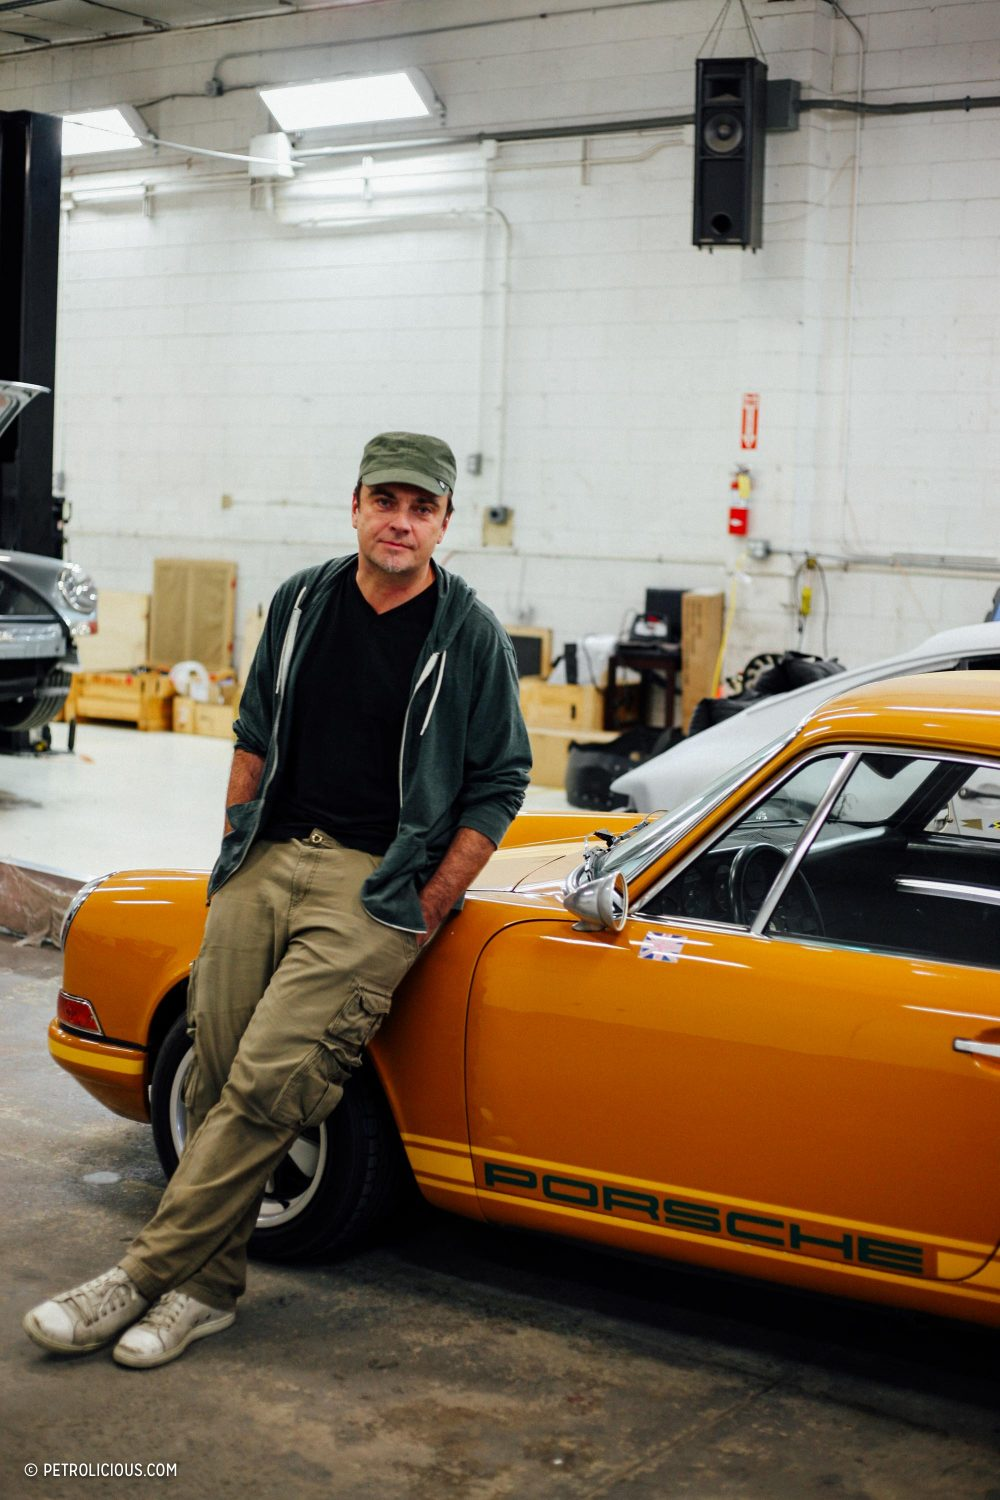 Design's Dickinson Vehicle Building Empire Singer Restomod Rob On A If6m7gyvYb